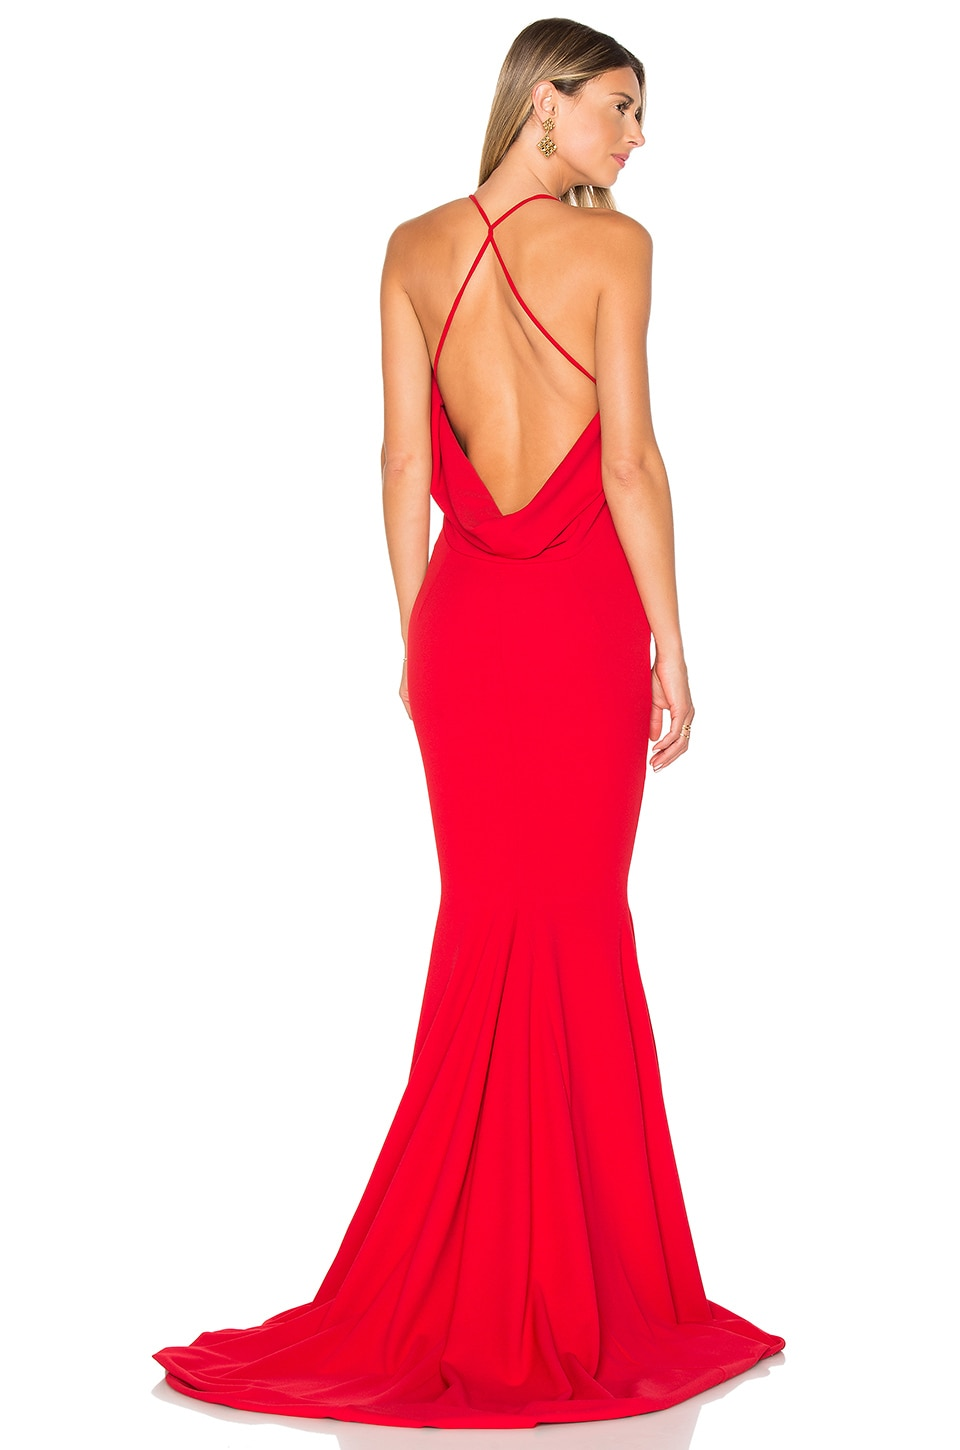 Gemeli Power Barthelemy Gown in Red Crepe